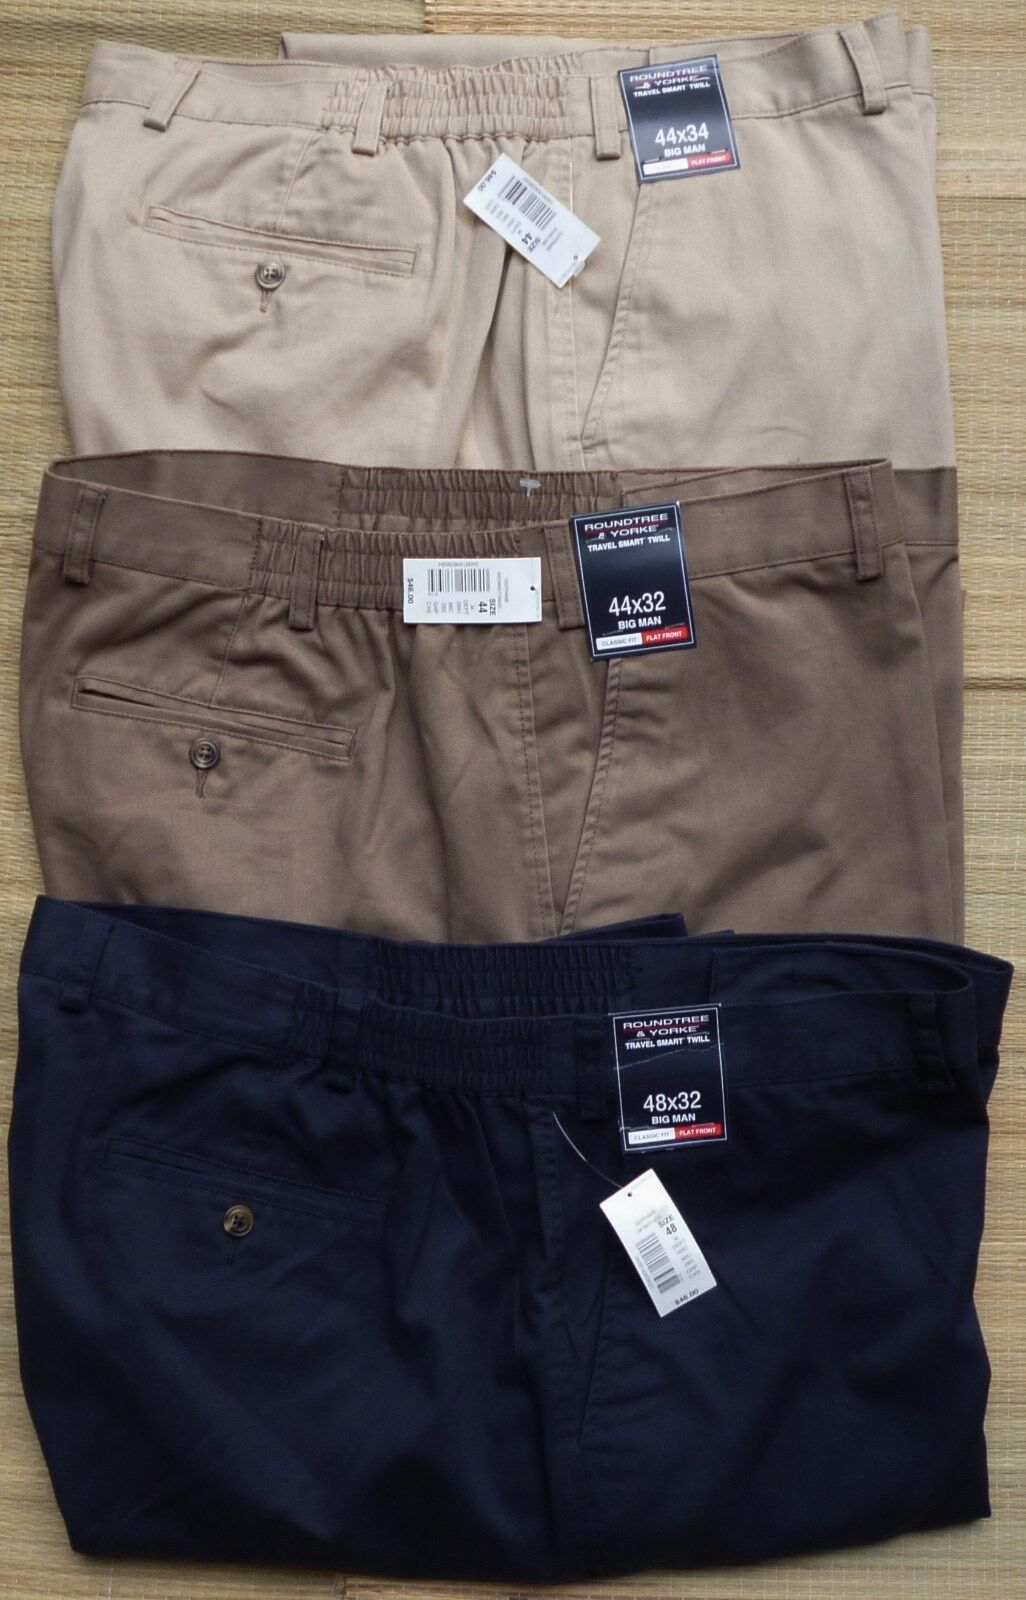 ROUNDTREE /& YORKE BIG /& TALL MEN/'S CASUAL TRAVEL SMART CLASSIC FIT PANTS LIST$46